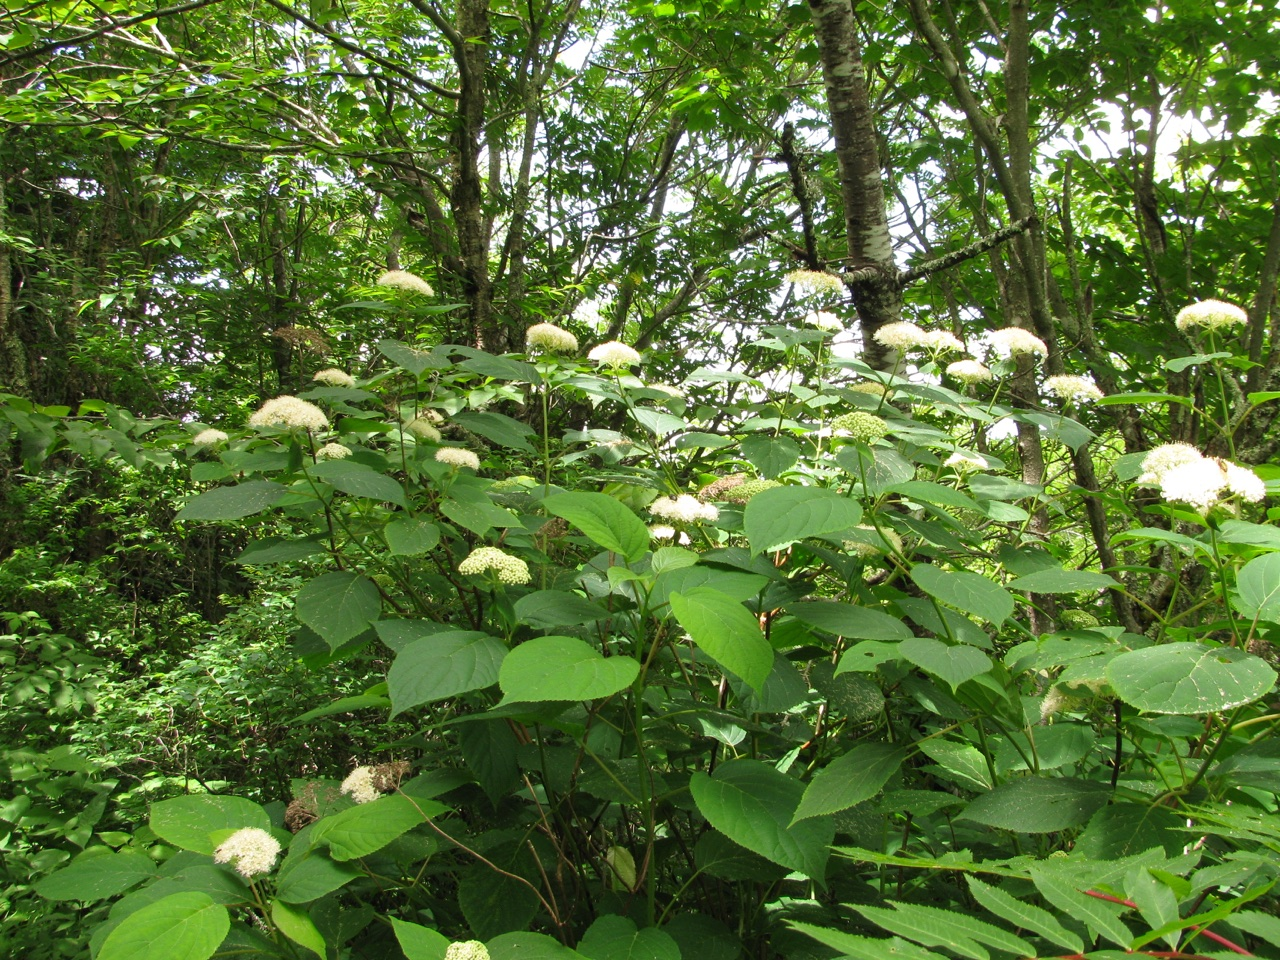 The Scientific Name is Hydrangea arborescens. You will likely hear them called Wild Hydrangea, Sevenbark. This picture shows the Shrub in bloom in mid-July of Hydrangea arborescens